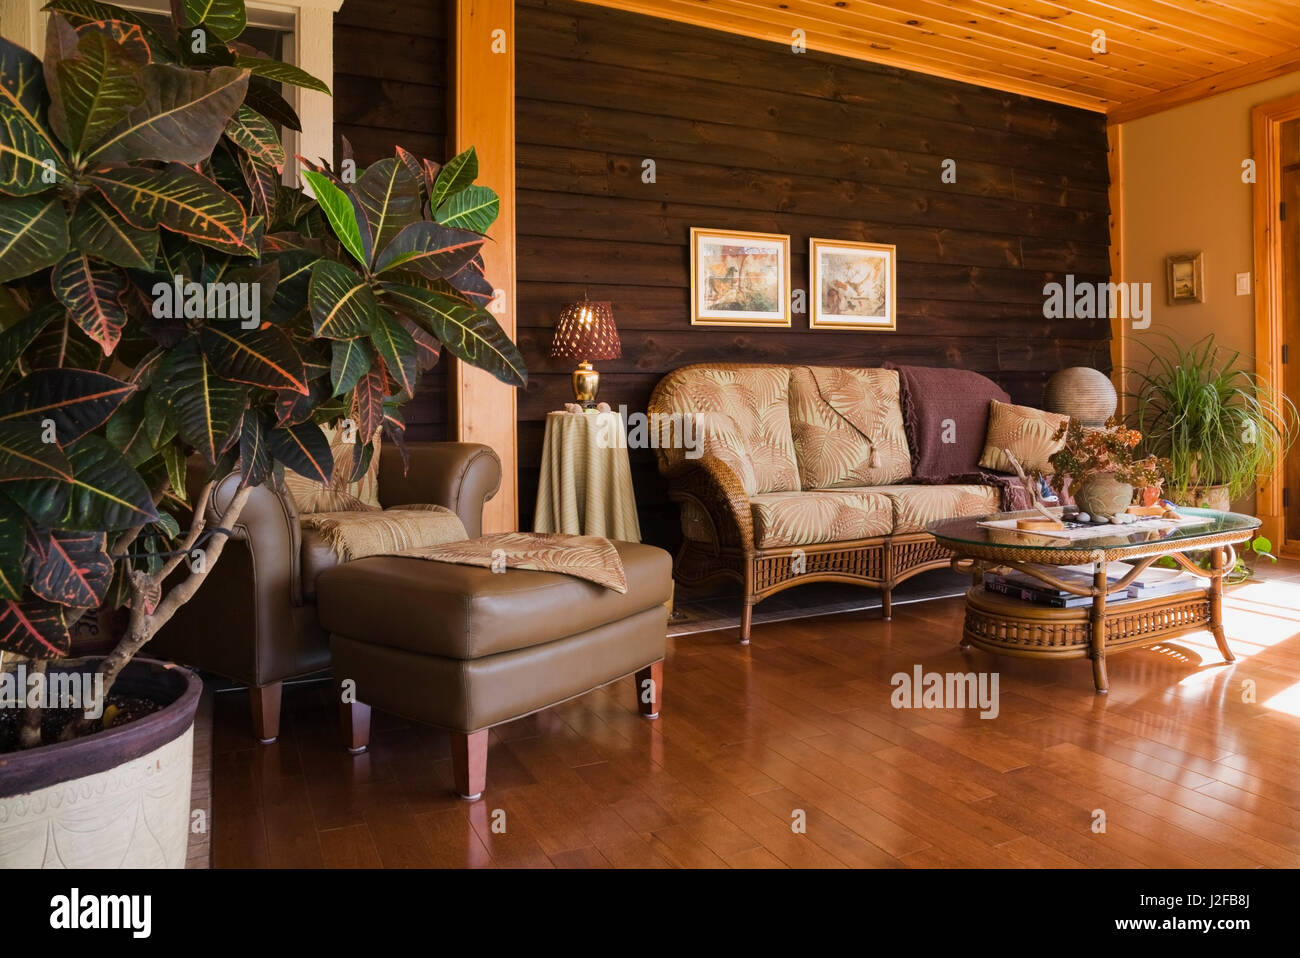 Brown leather chair with ottoman and wicker sofa in the sunroom extension attached to an old 1877 cottage style Stock Photo